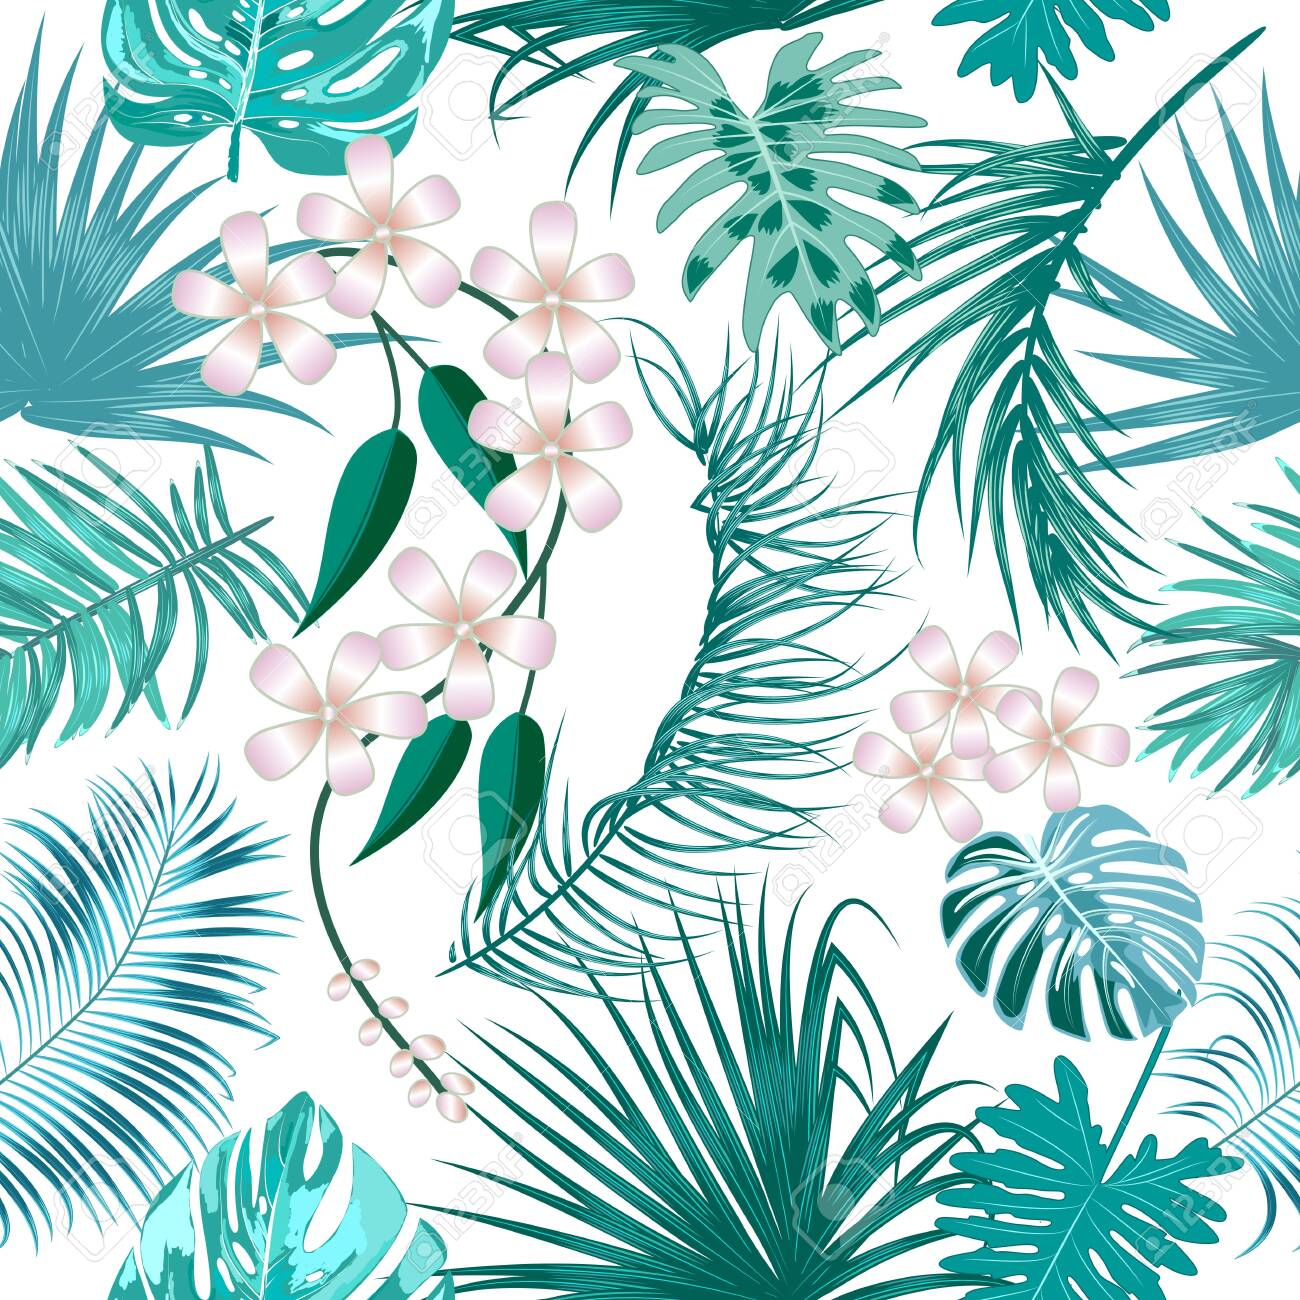 Vector tropical jungle seamless pattern with palm trees leaves and flowers, background for wedding, Birthday and invitation cards - 147961872